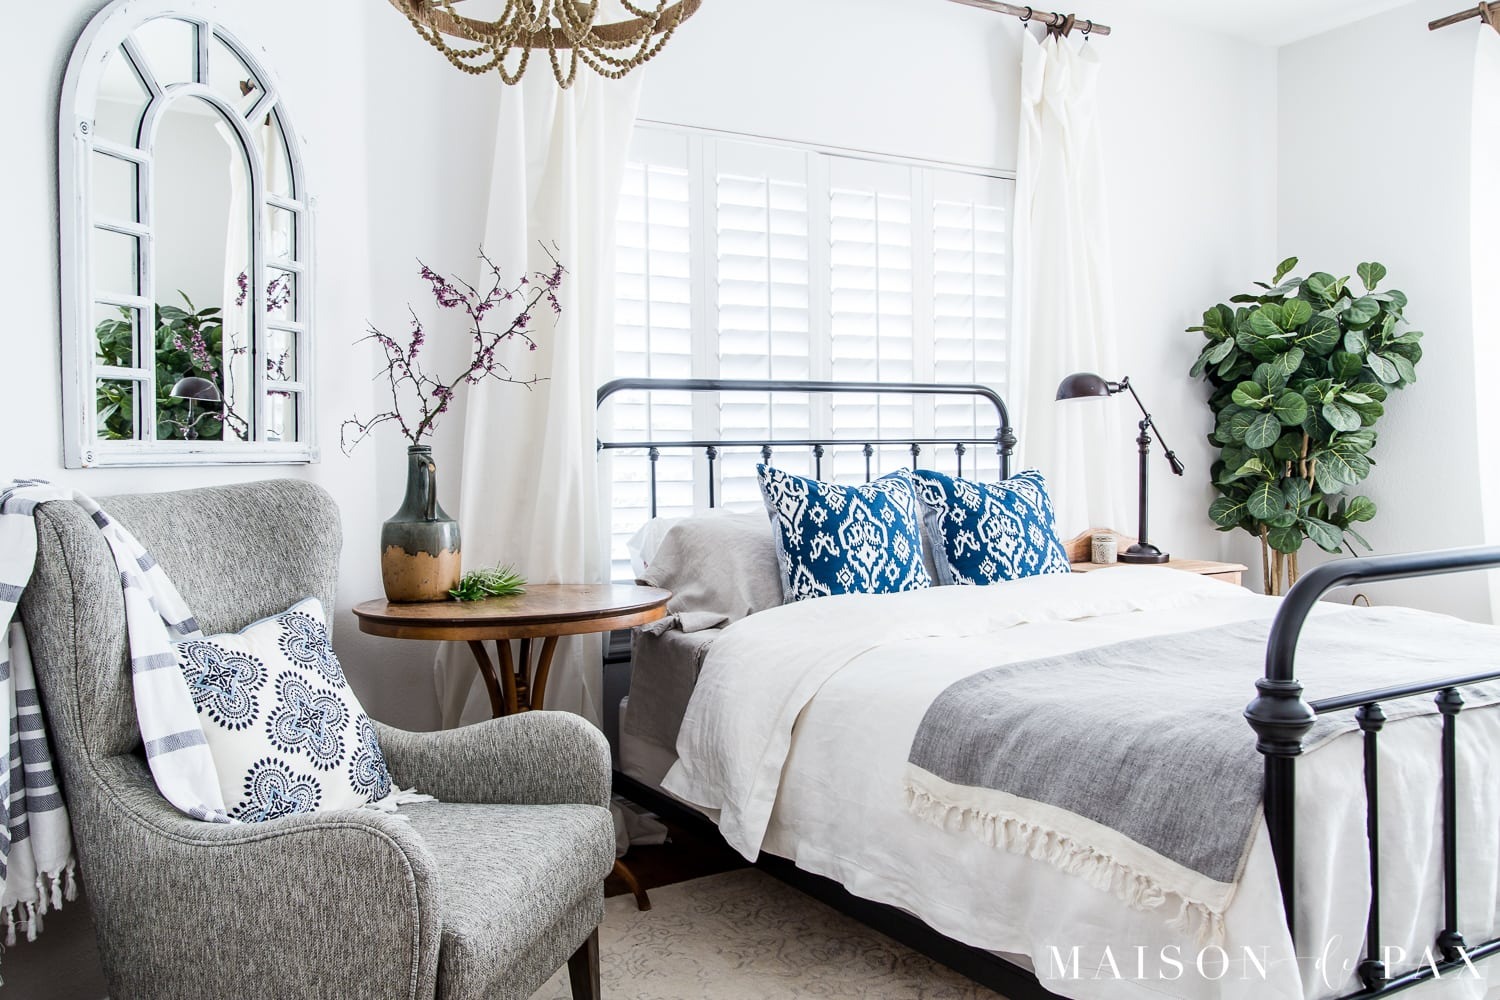 Superieur Mostly White Bedroom With Pops Of Blue For Spring/summer... Looking To